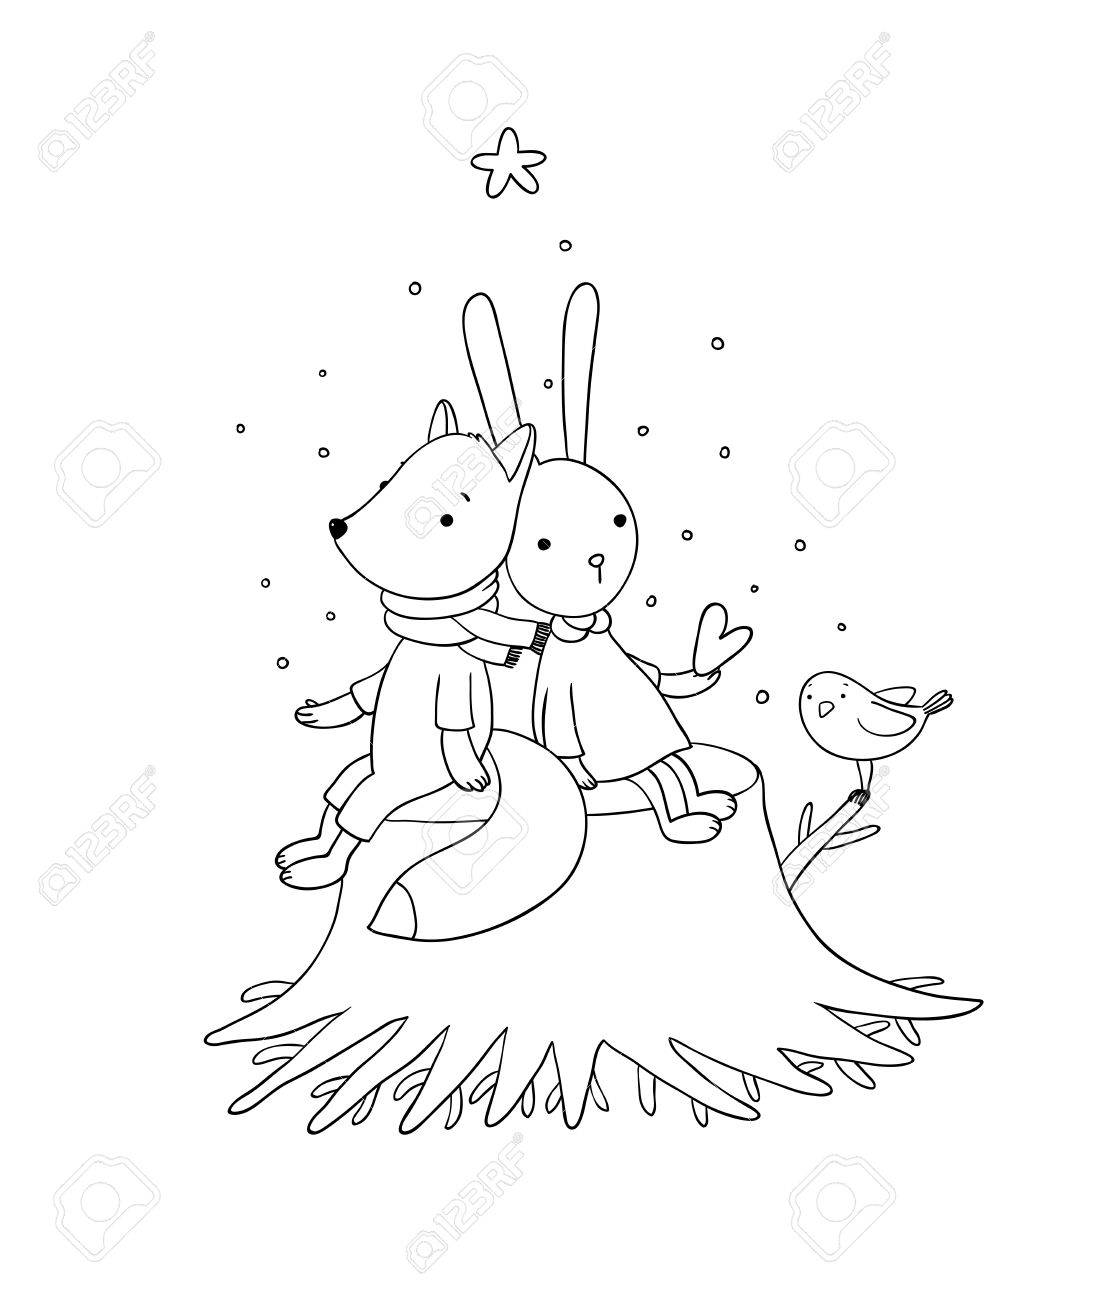 Coloring Book Vector 1114x1300 Fox Rabbit And Bird Sitting On A Tree Stump Animals Of The